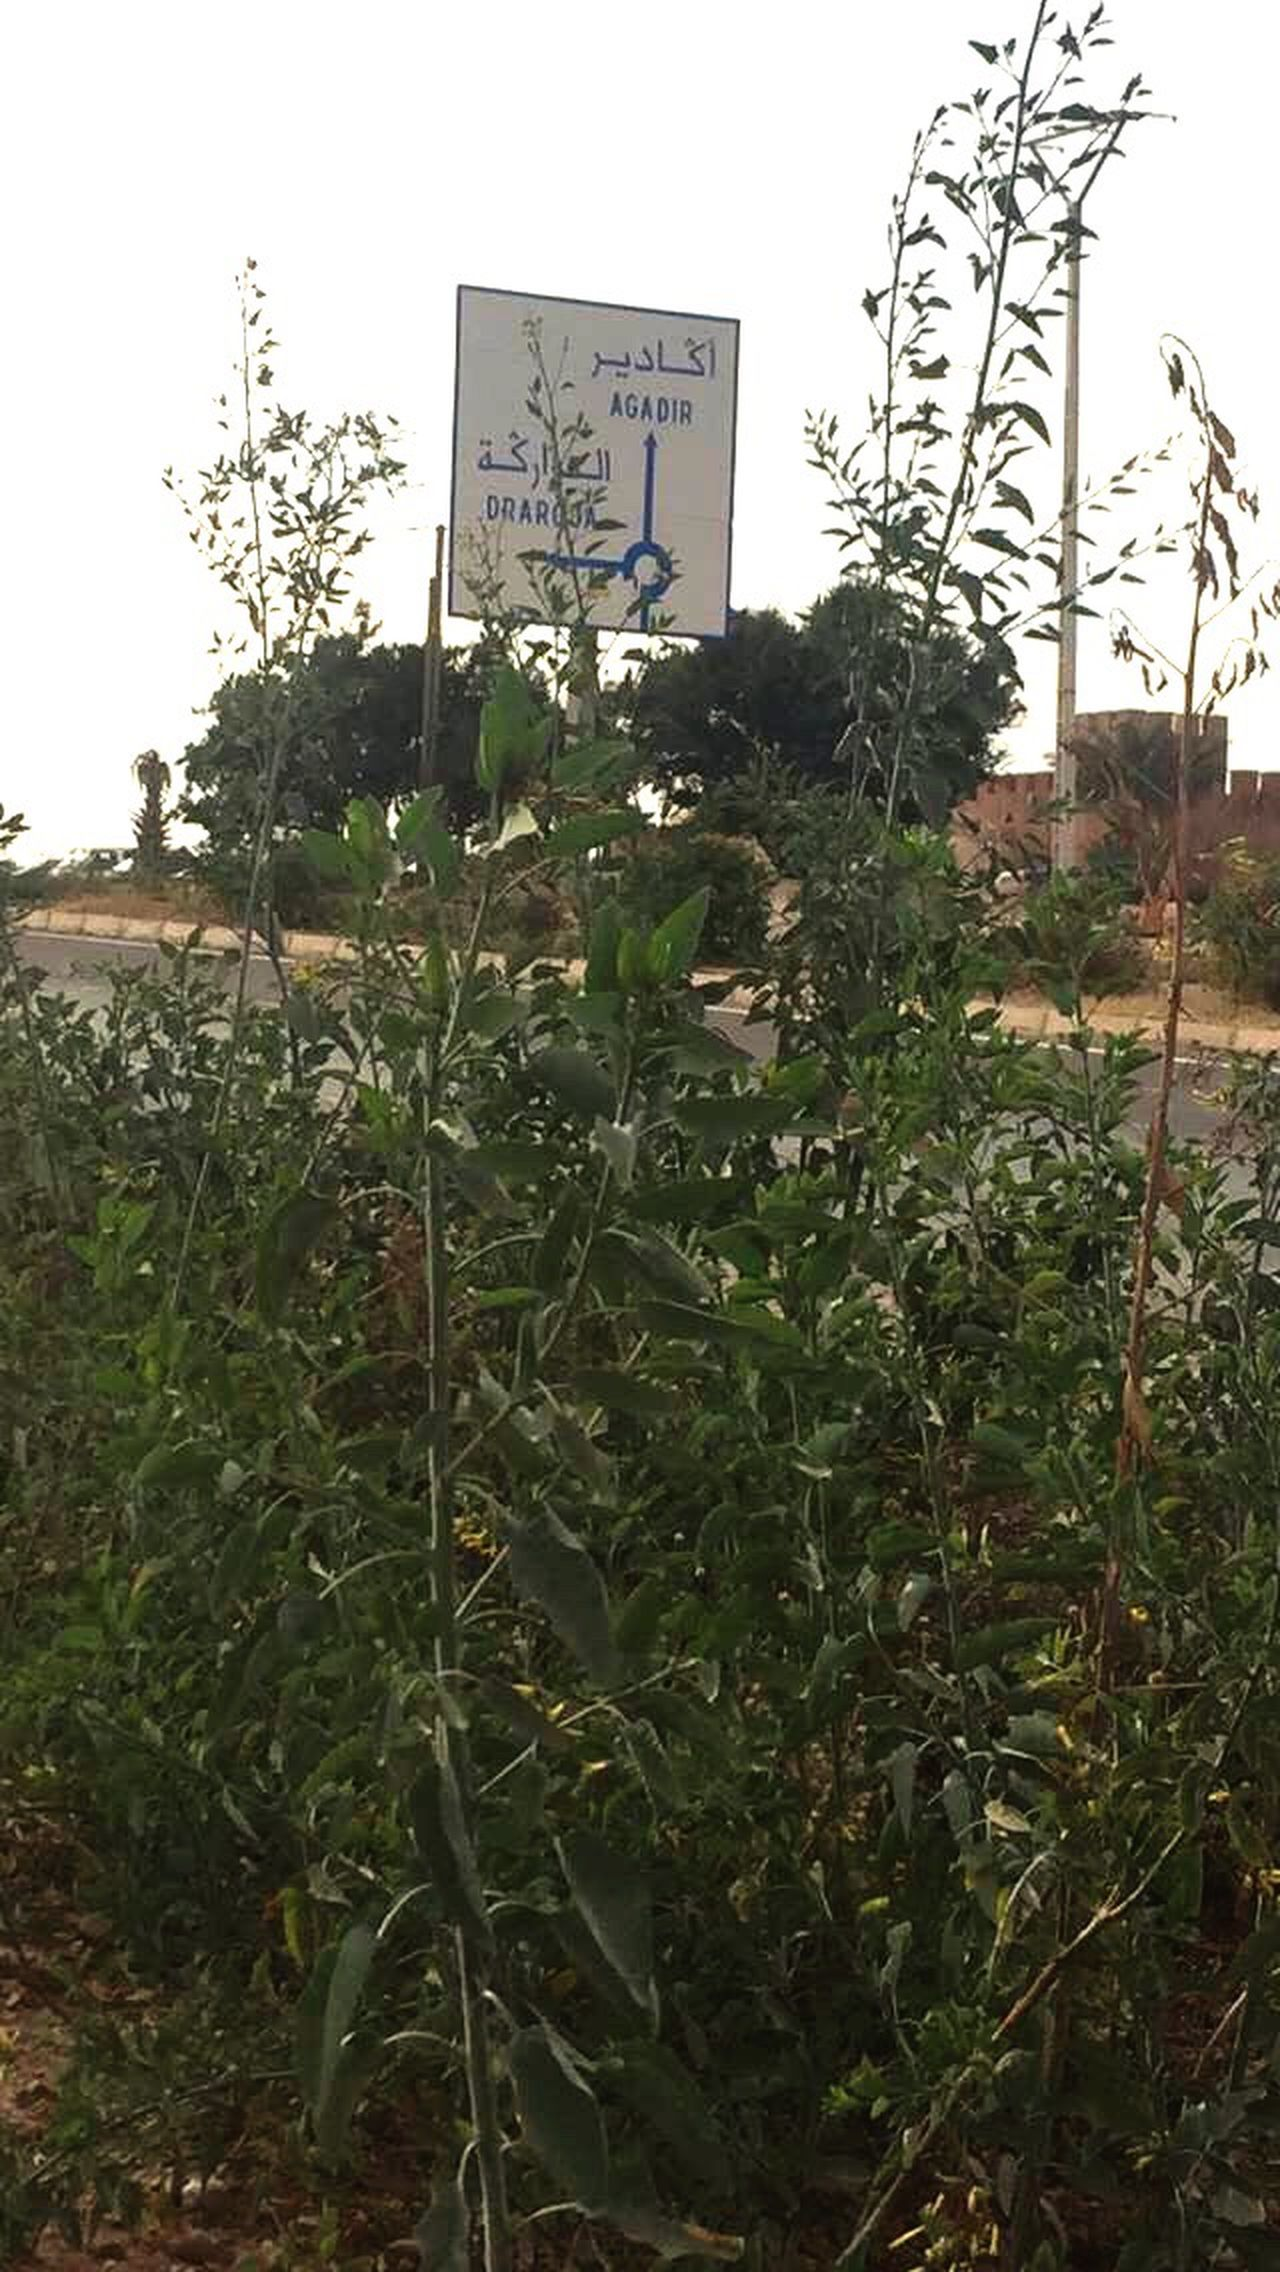 Adapted To The City Communication Text Information Sign Plant Sign Green Color Leaf Growth Road Sign Guidance No People Nature Outdoors Low Angle View Signboard Tree Day Sky Exit Sign Agadir Morocco Agadir